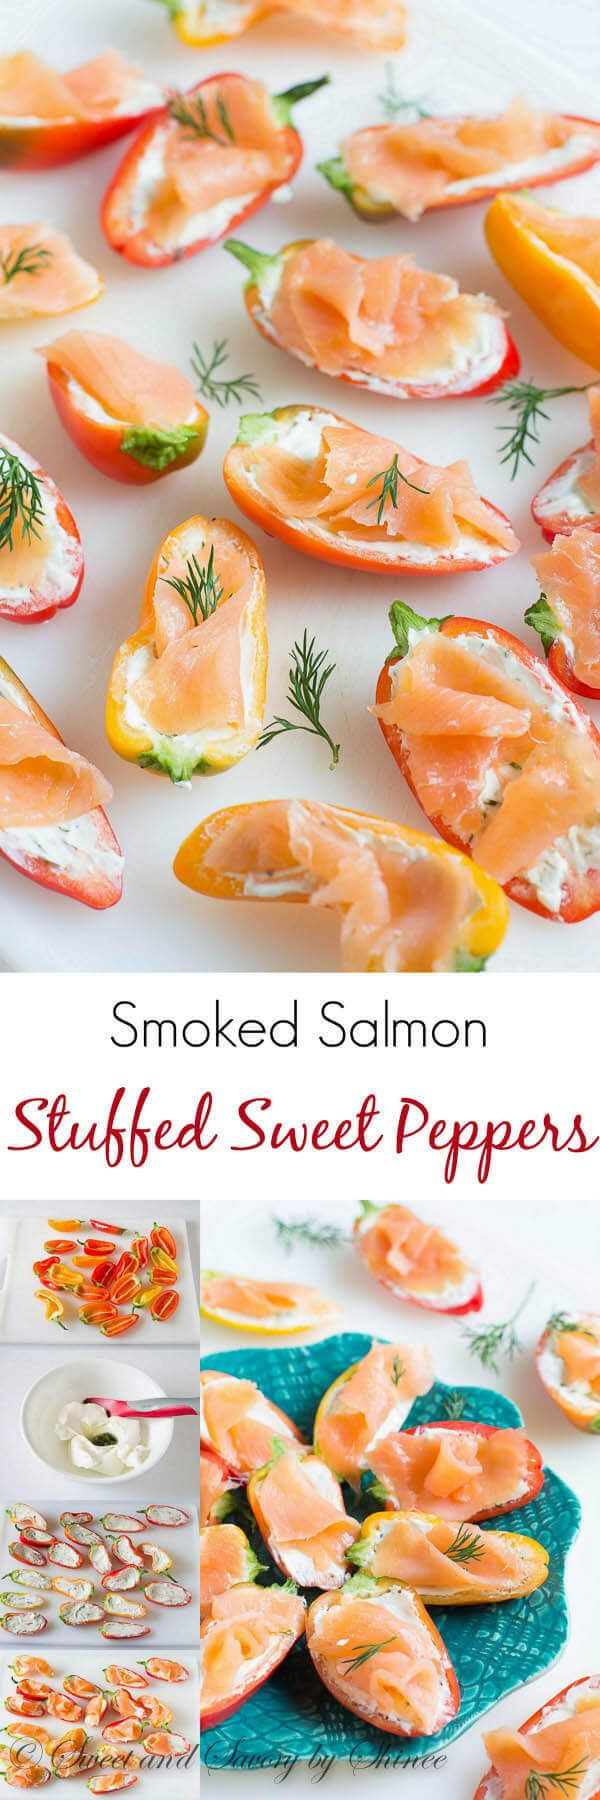 Irresistibly Crunchy, Creamy And Smoky, These Adorable Smoked Salmon  Stuffed Sweet Peppers Are Laughably